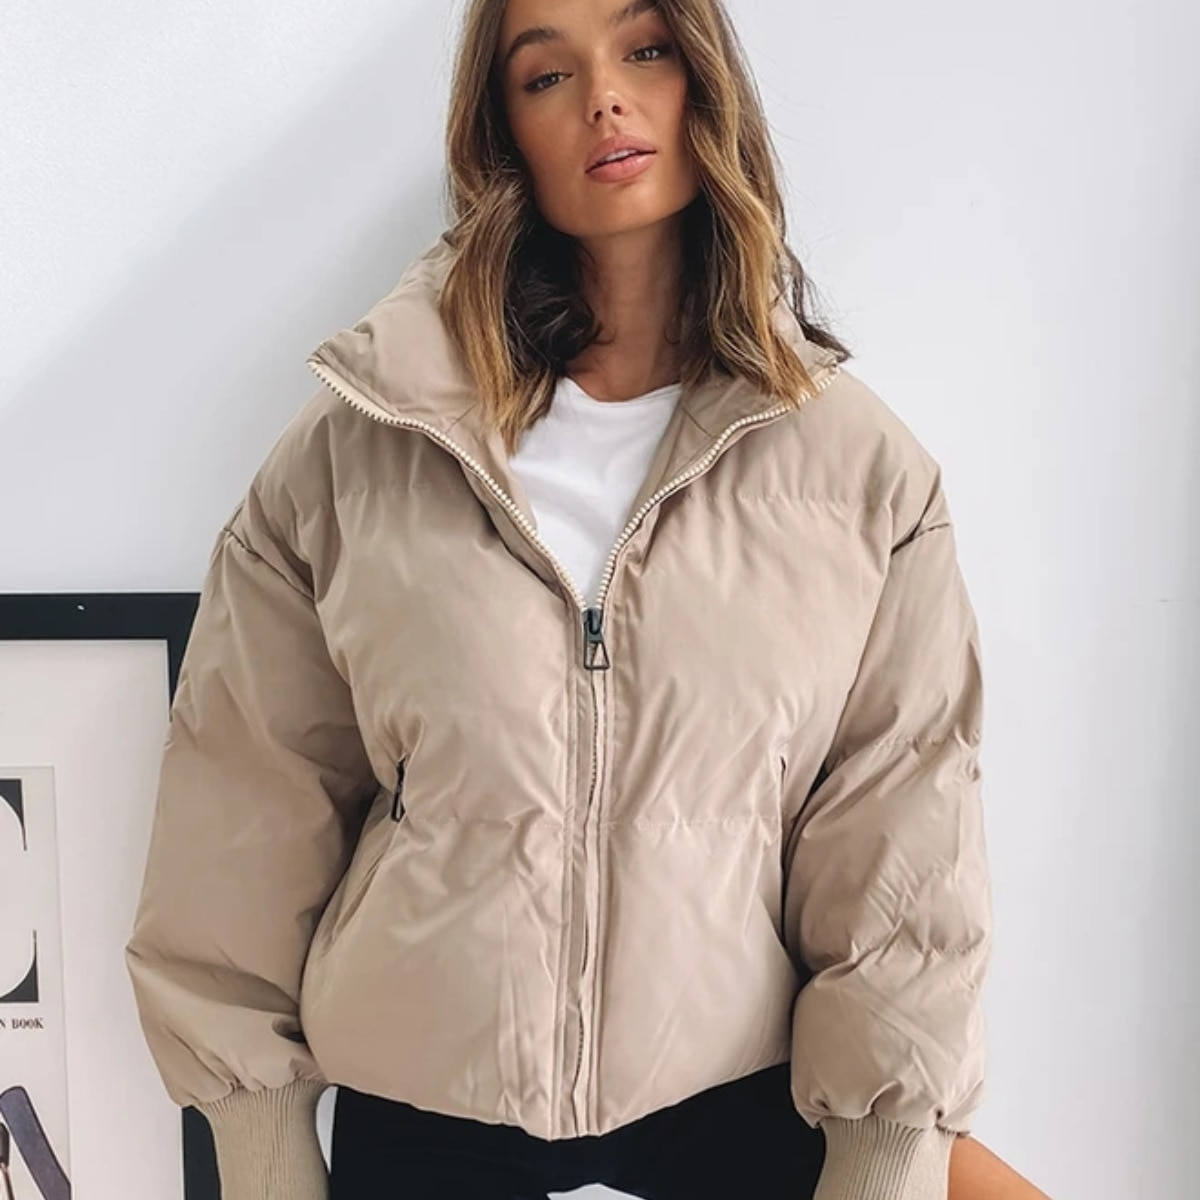 Women Jackets Zipper Winter Warm Winter Coats Turn Down Collar Chic Solid Color Autumn Ladies Fashion For Female 2020 inclined zipper fly rib spliced turn down collar slimming flocked sweatshirt for men